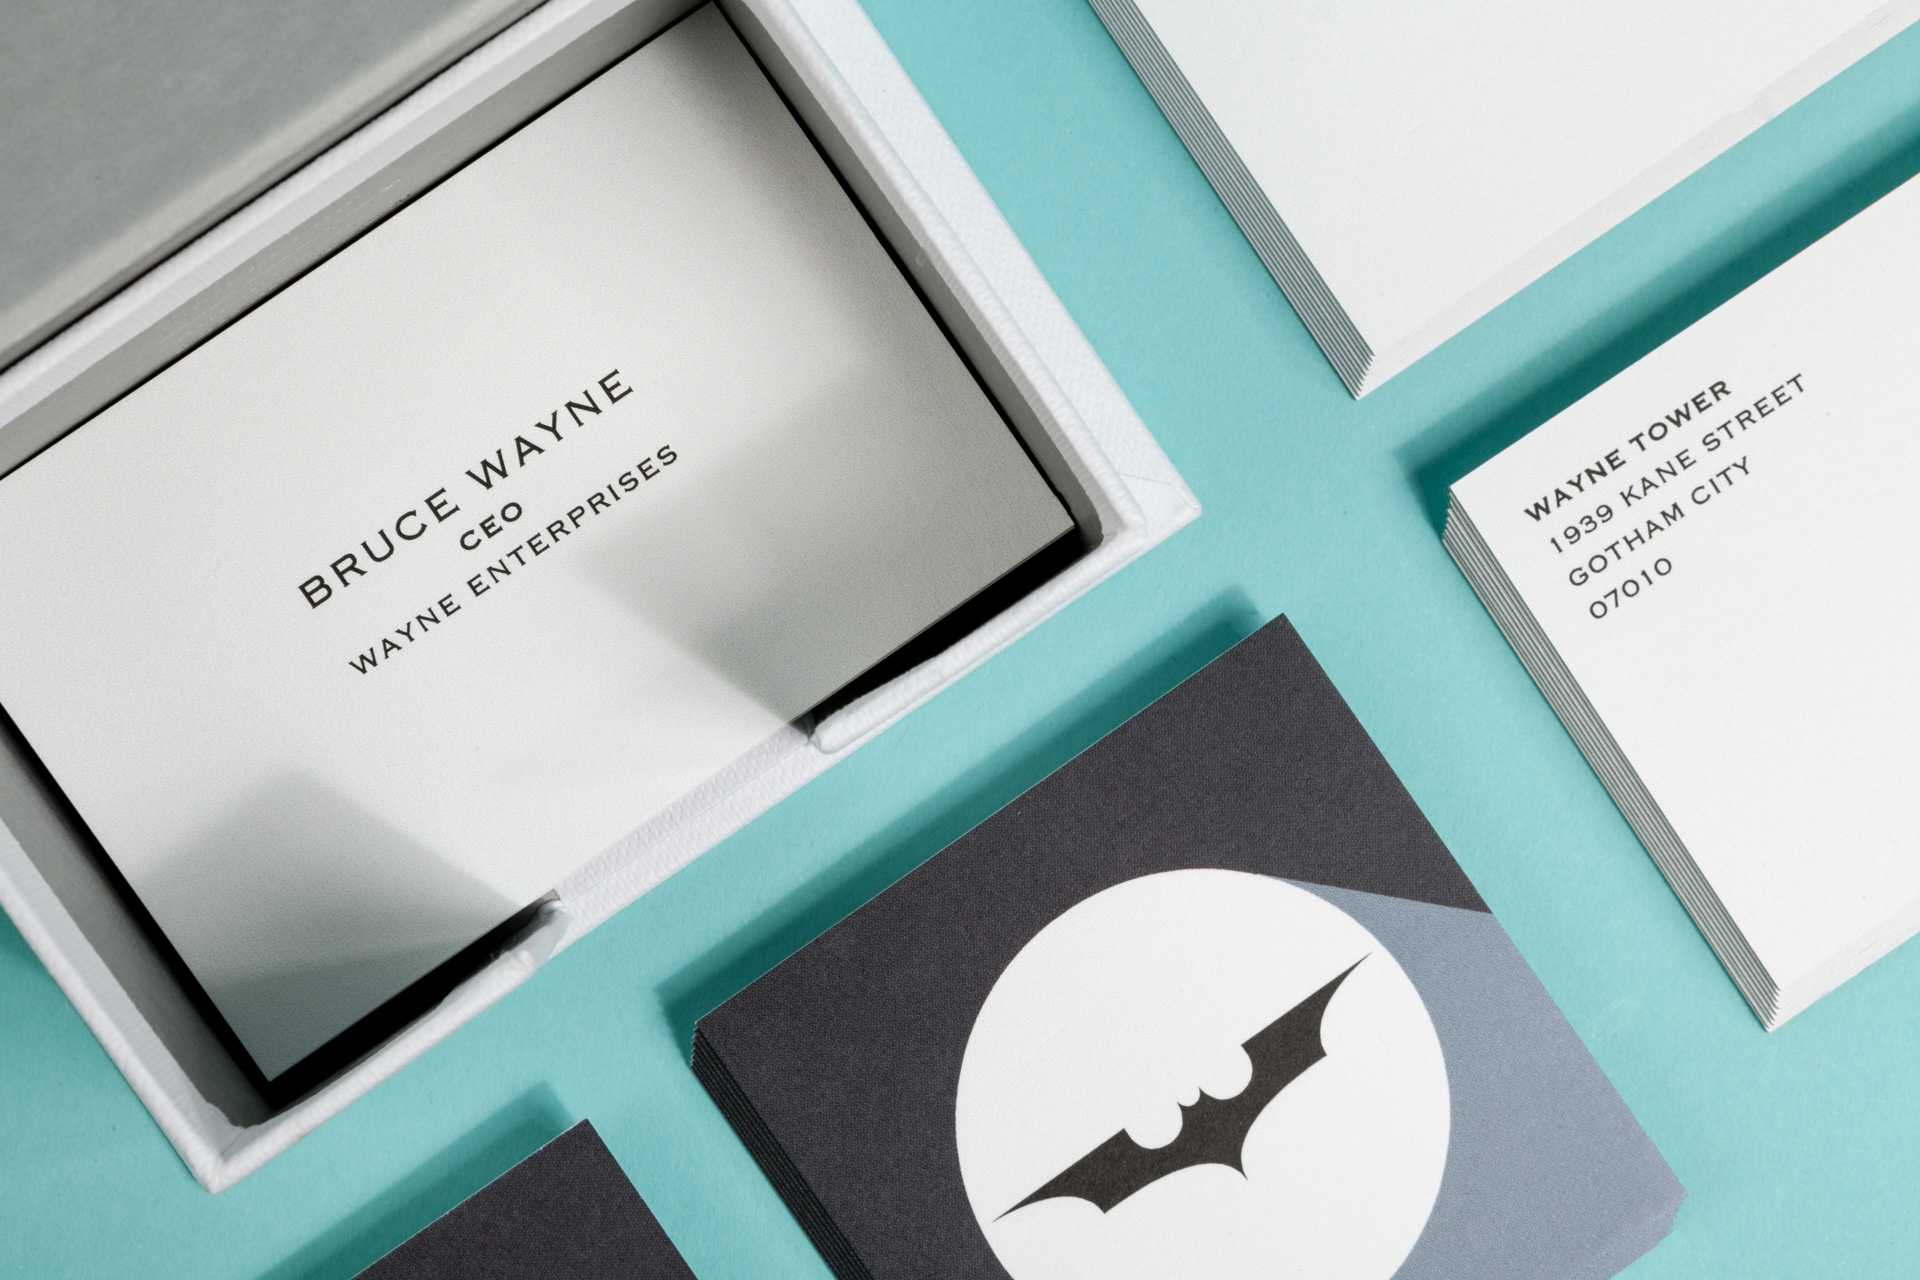 third city — not bird or plane but square business card